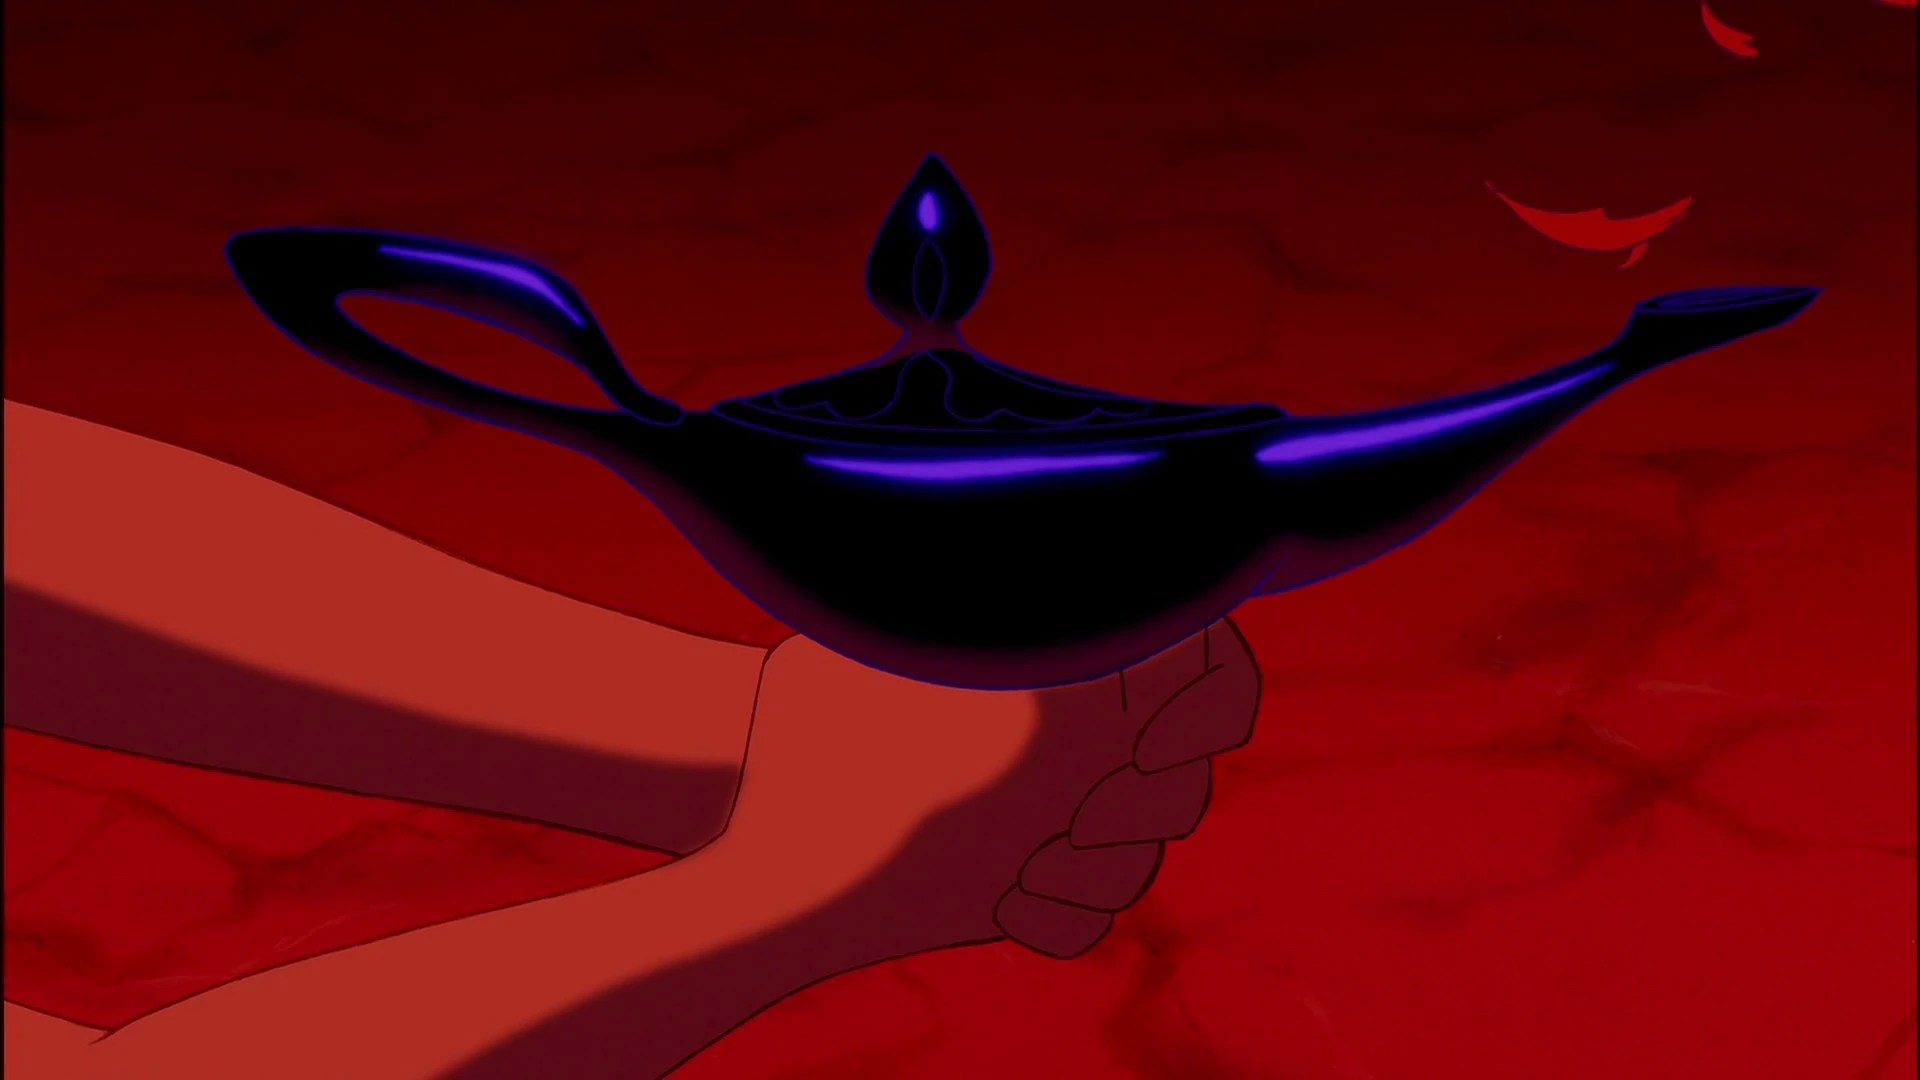 Lampada Batman Jafar 39s Lamp Kingdom Hearts Unlimited Wiki Fandom